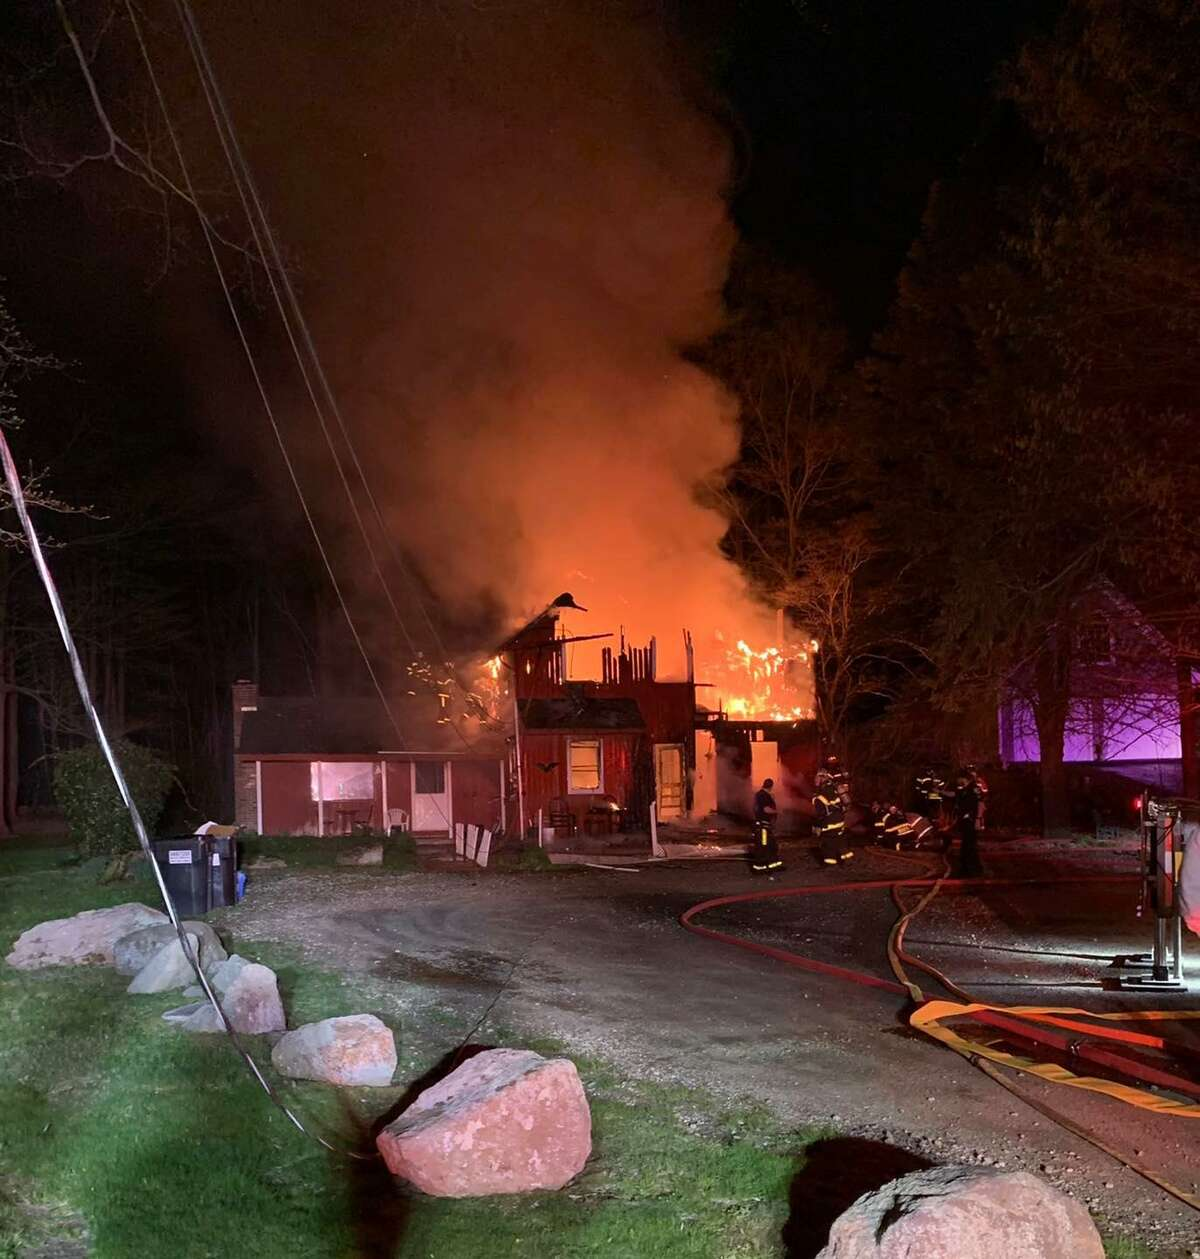 The fire required aid from surrounding towns, including Madison Hose Company, Killingworth Volunteer Fire Department, Old Saybrook Volunteer Fire Department and the Westbrook Fire Department.